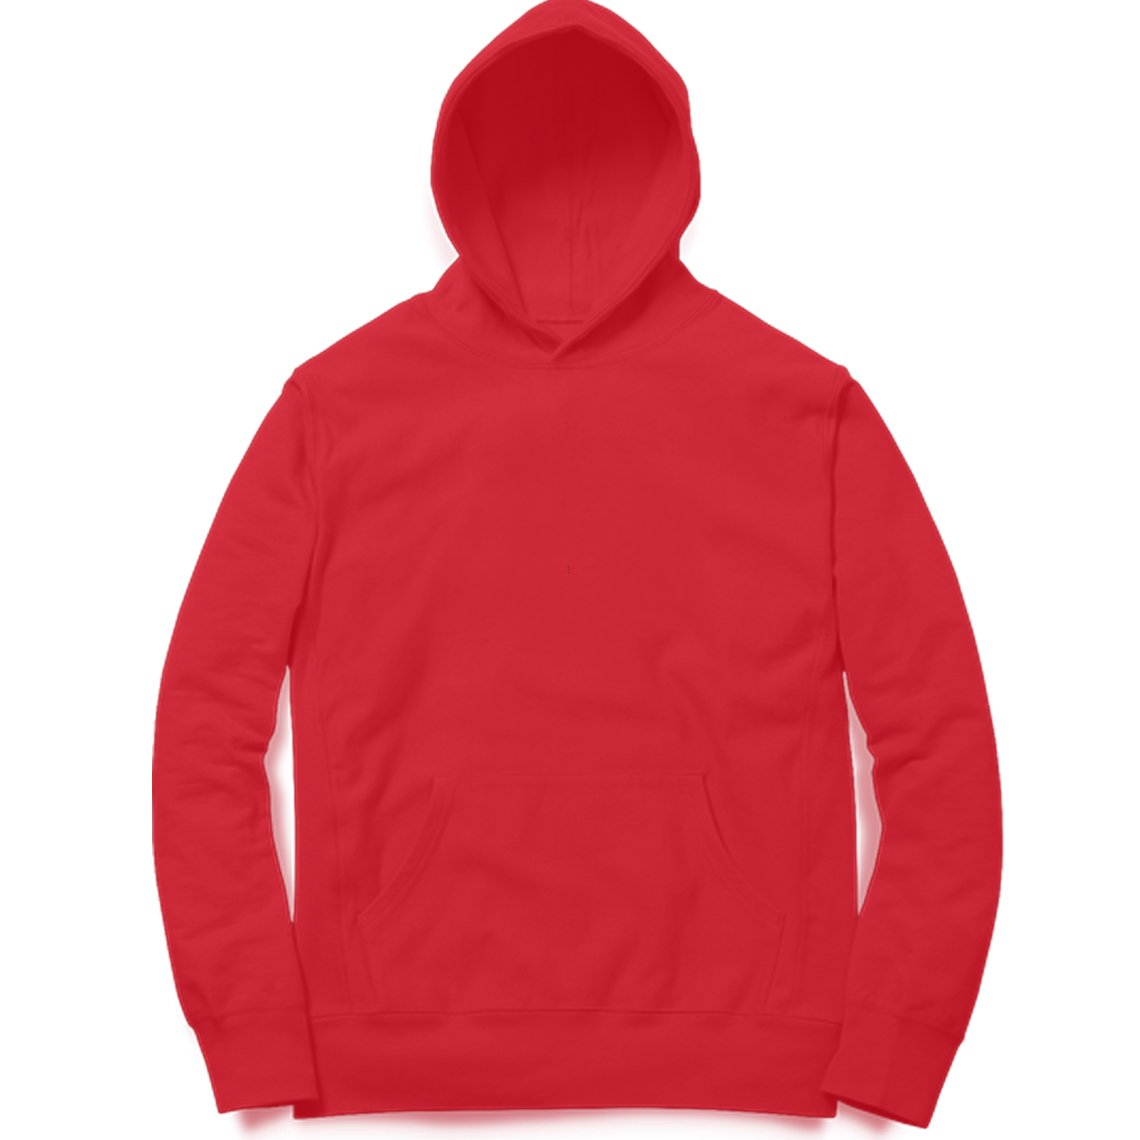 PLAIN RED - UNISEX HOODIE - Patch Fusion